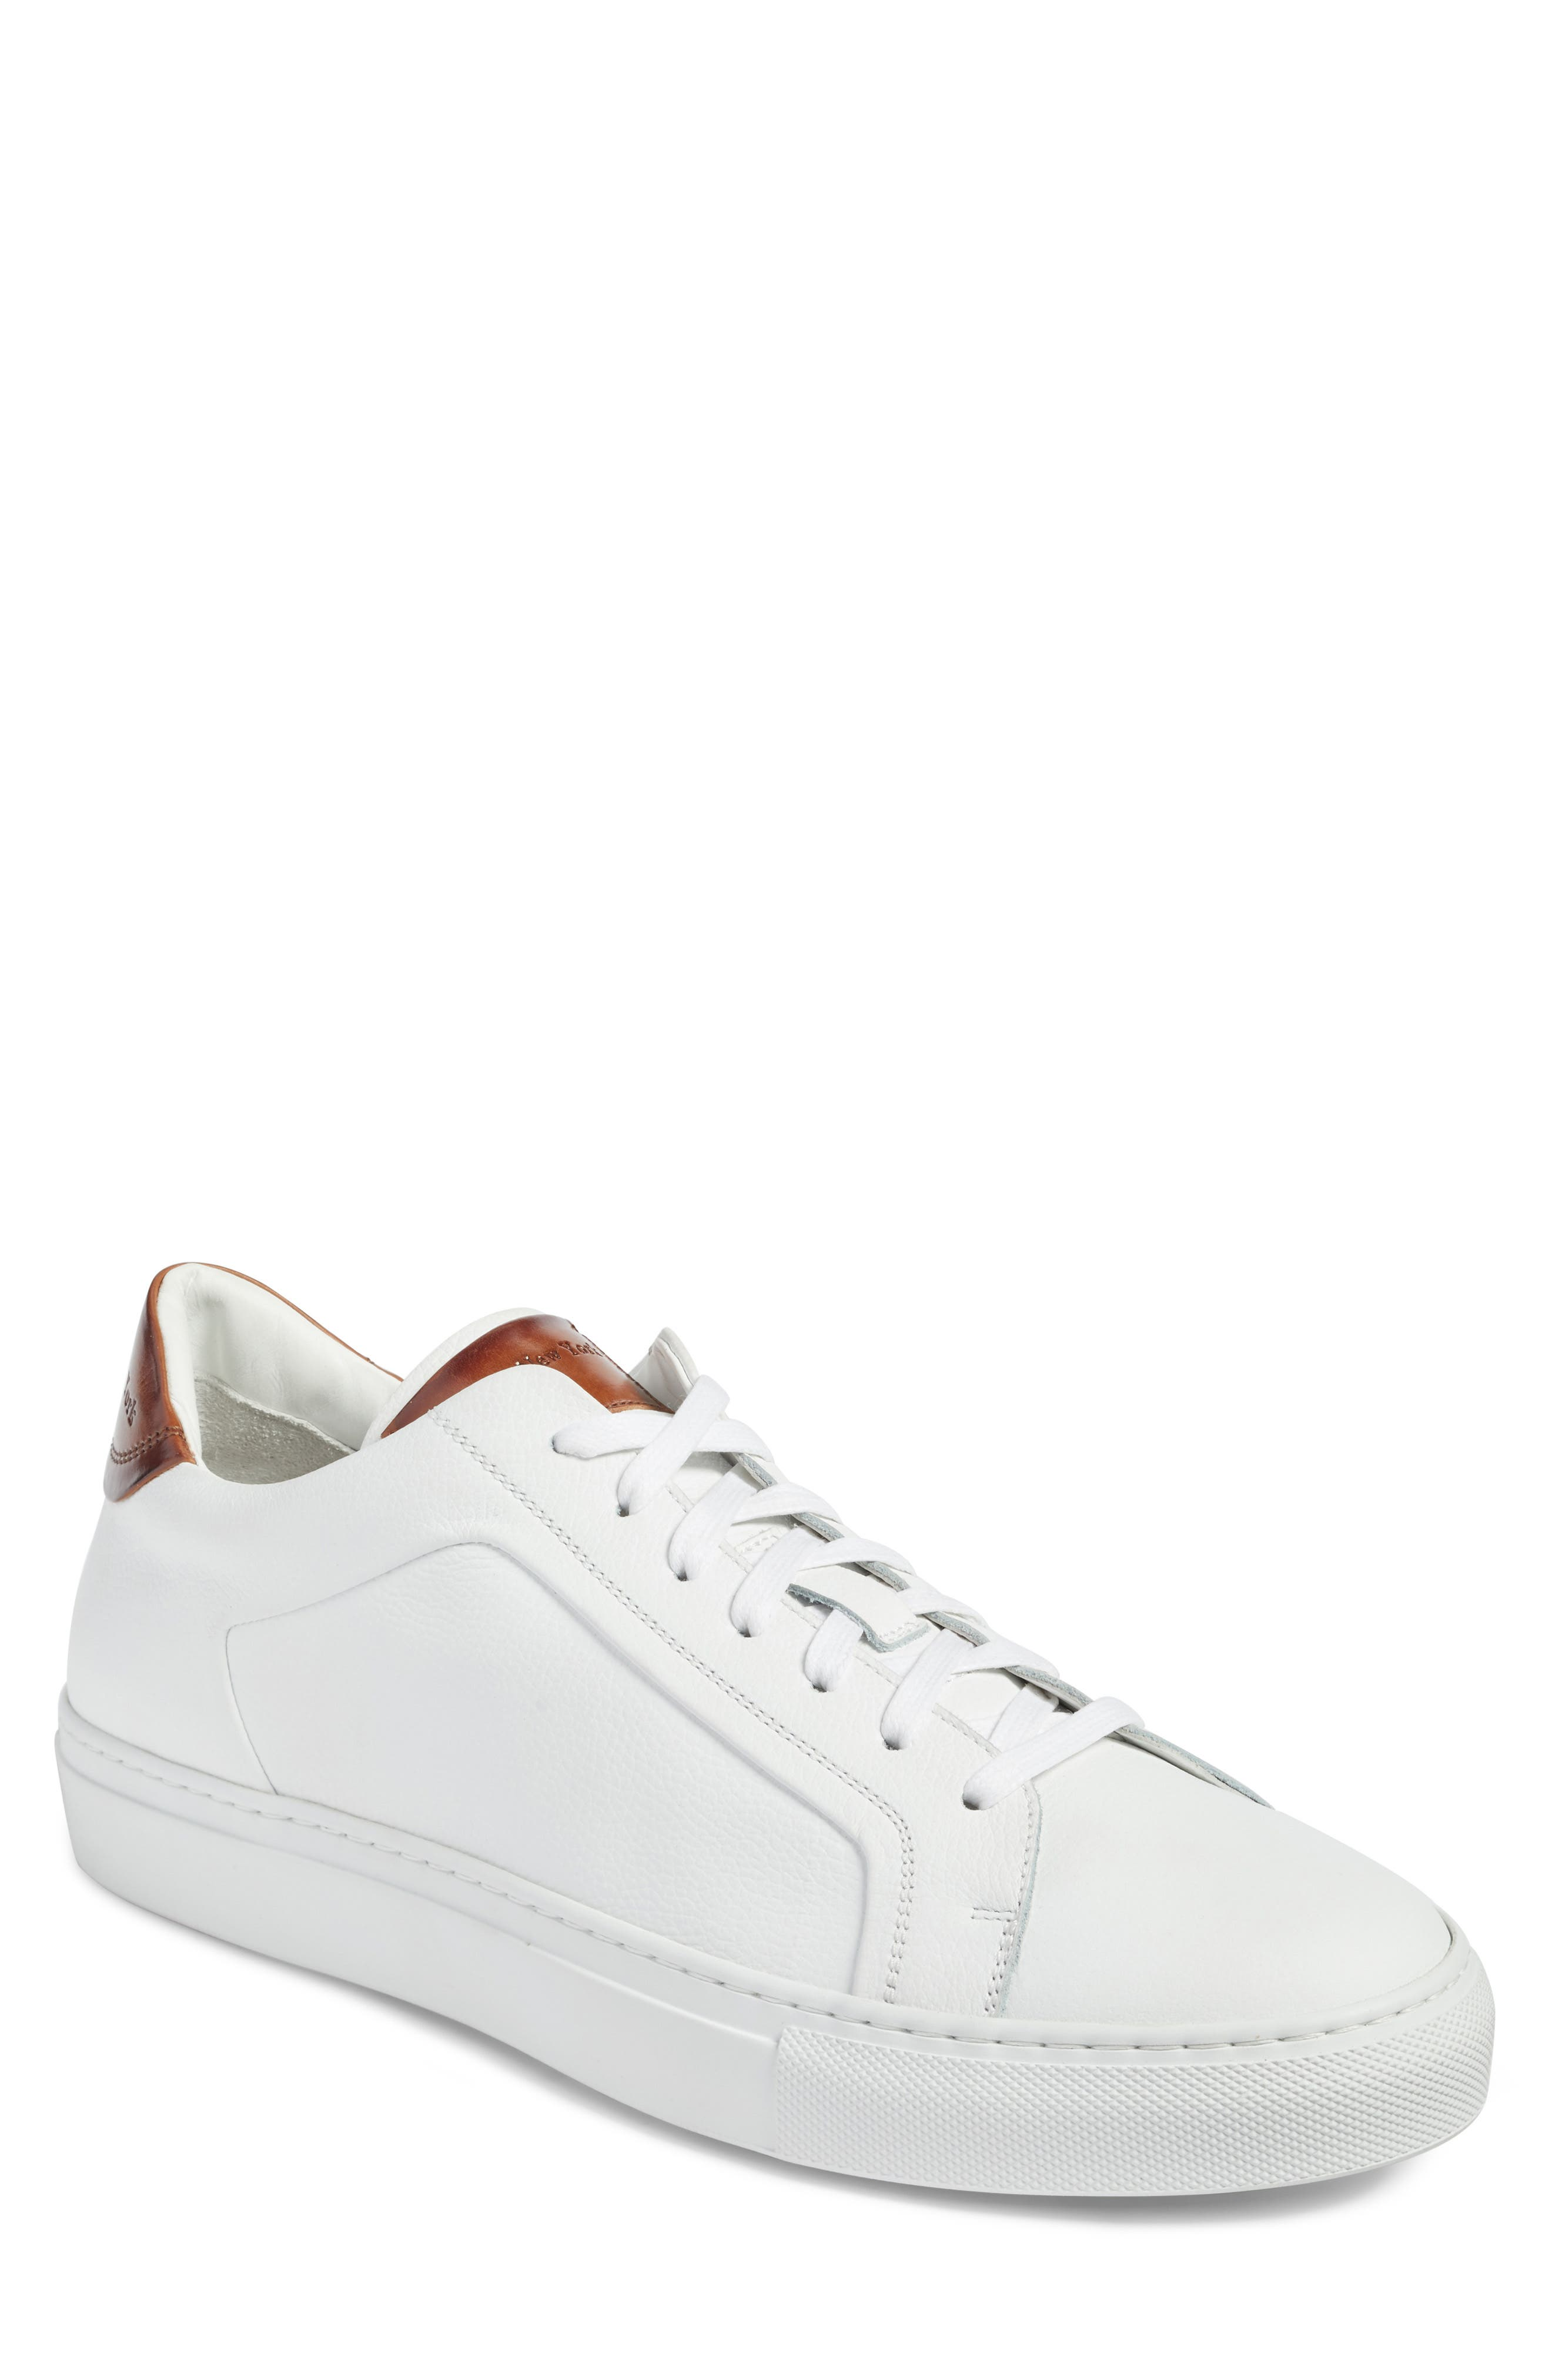 TO BOOT NEW YORK Men'S Carlin Leather Lace Up Sneakers in White/ Tan Leather